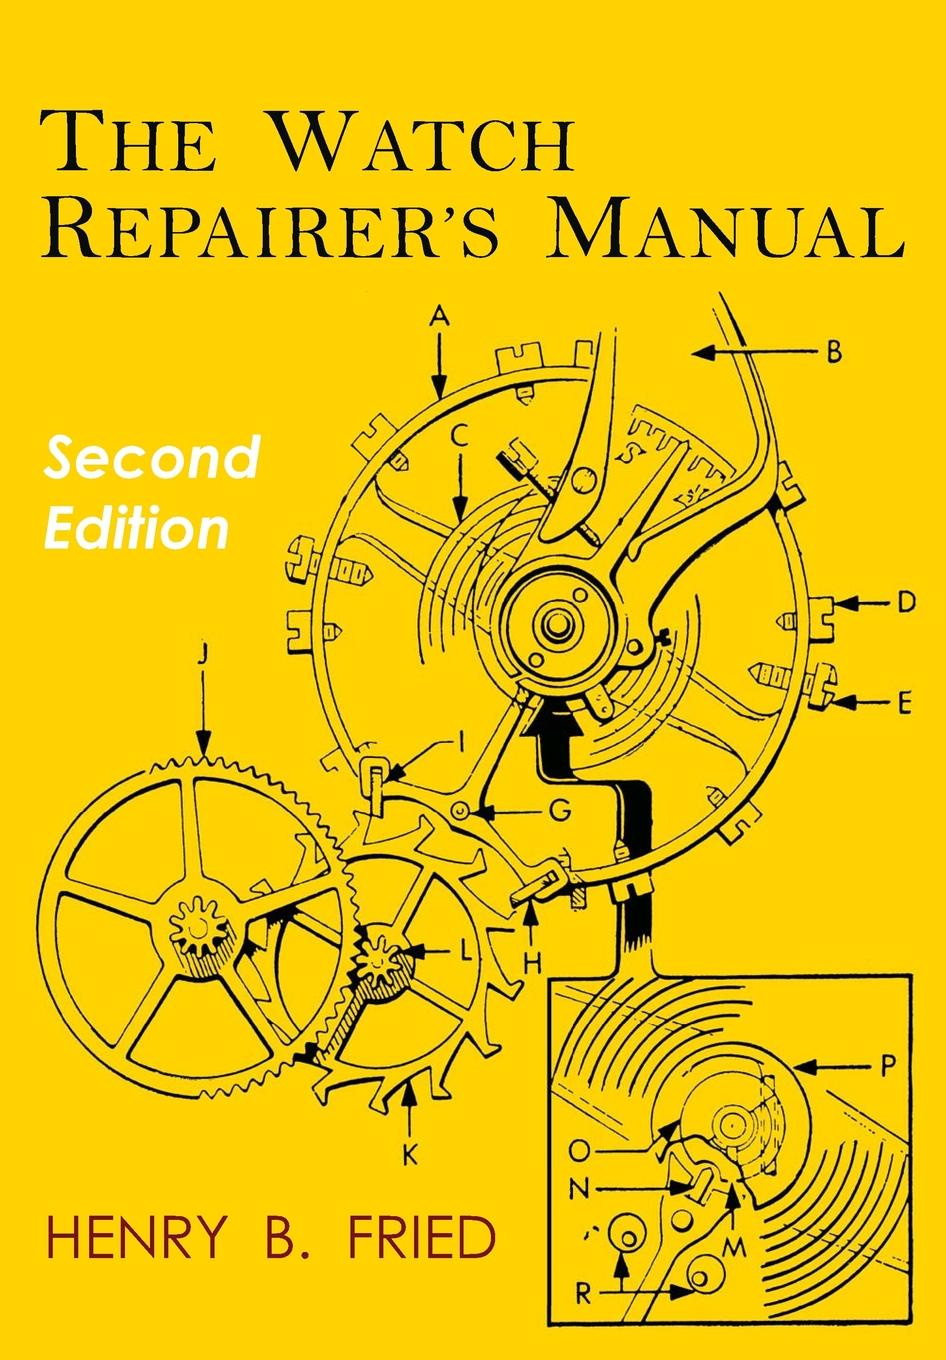 The Watch Repairer's Manual. Second Edition